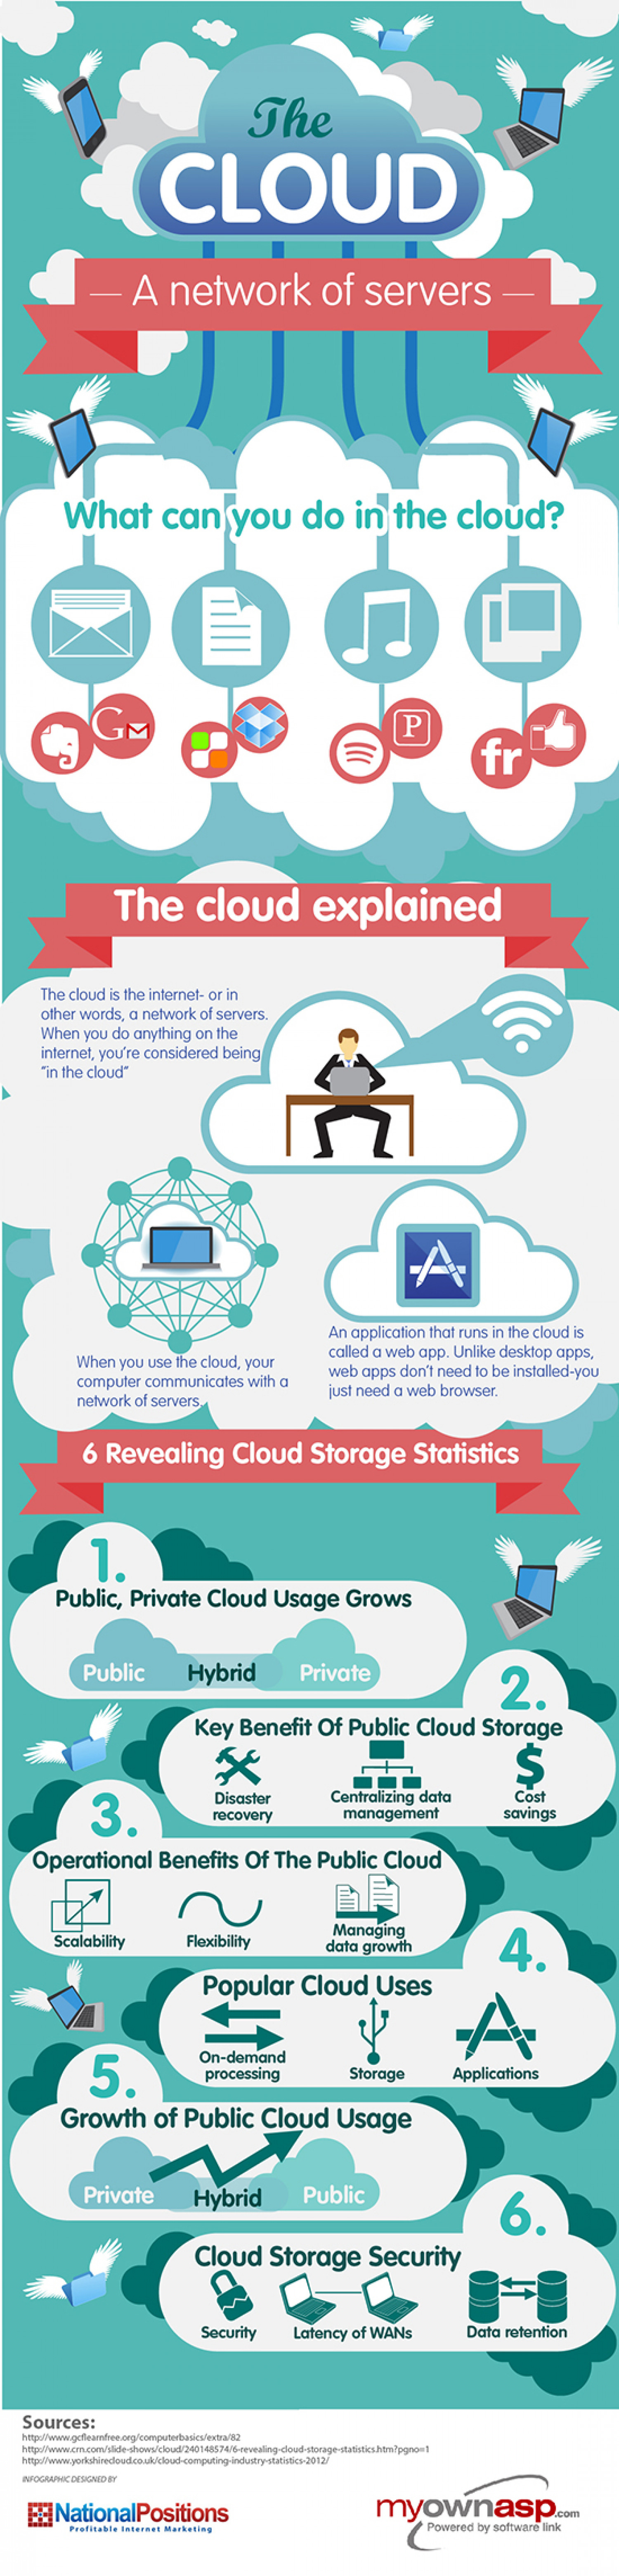 The Cloud: A Network of Servers Infographic